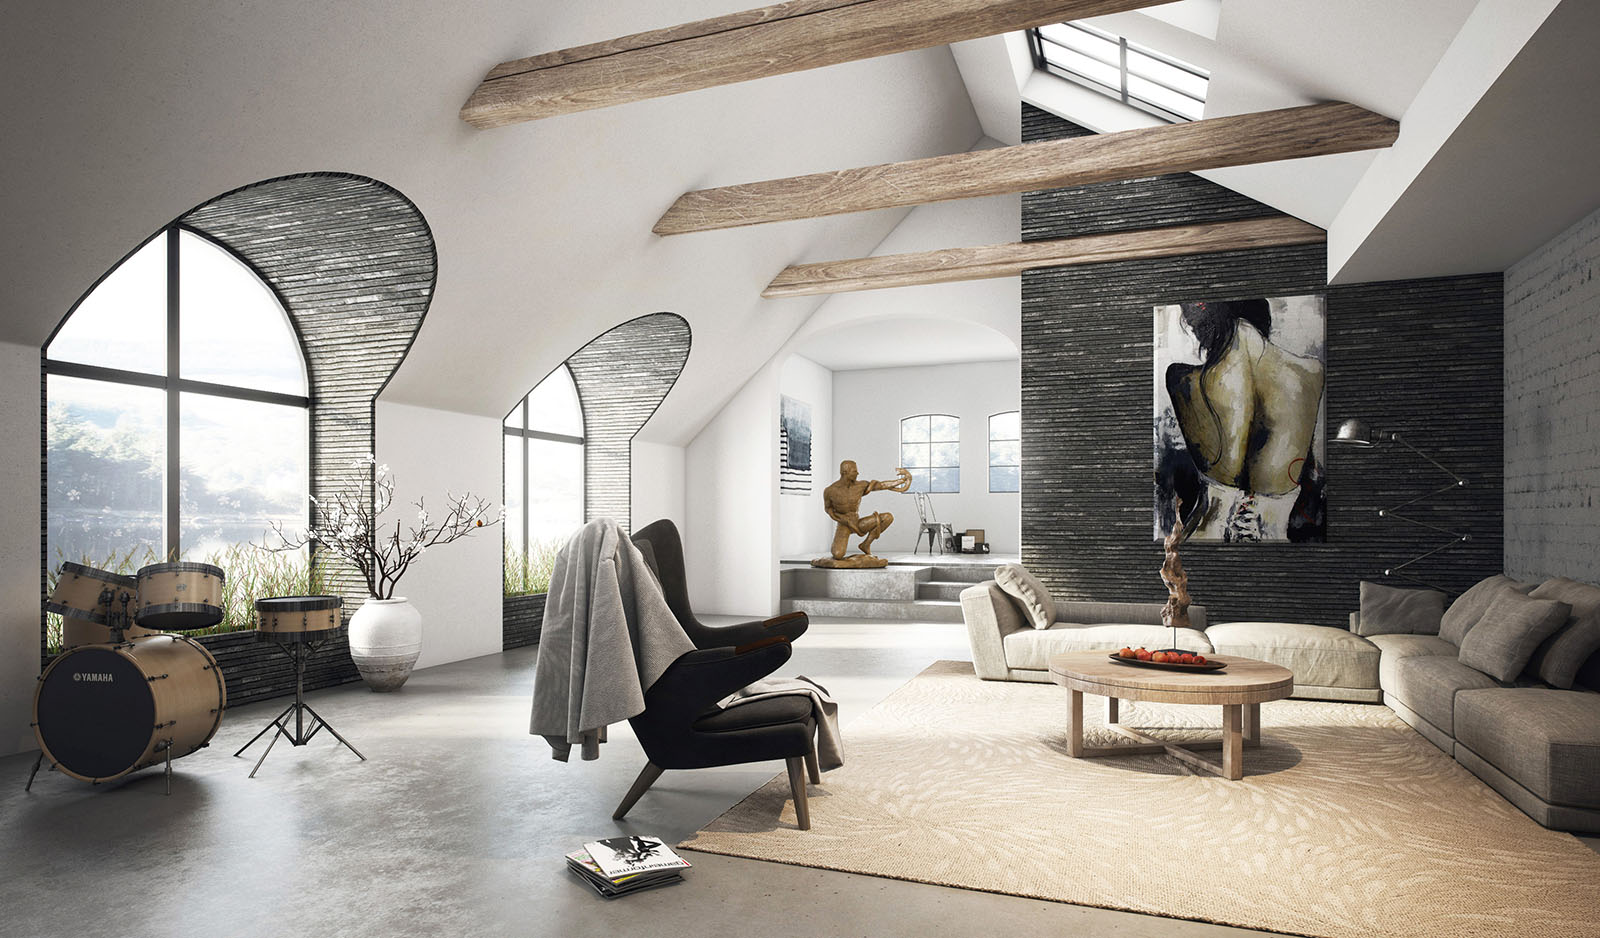 Spacious attic living room in 3D